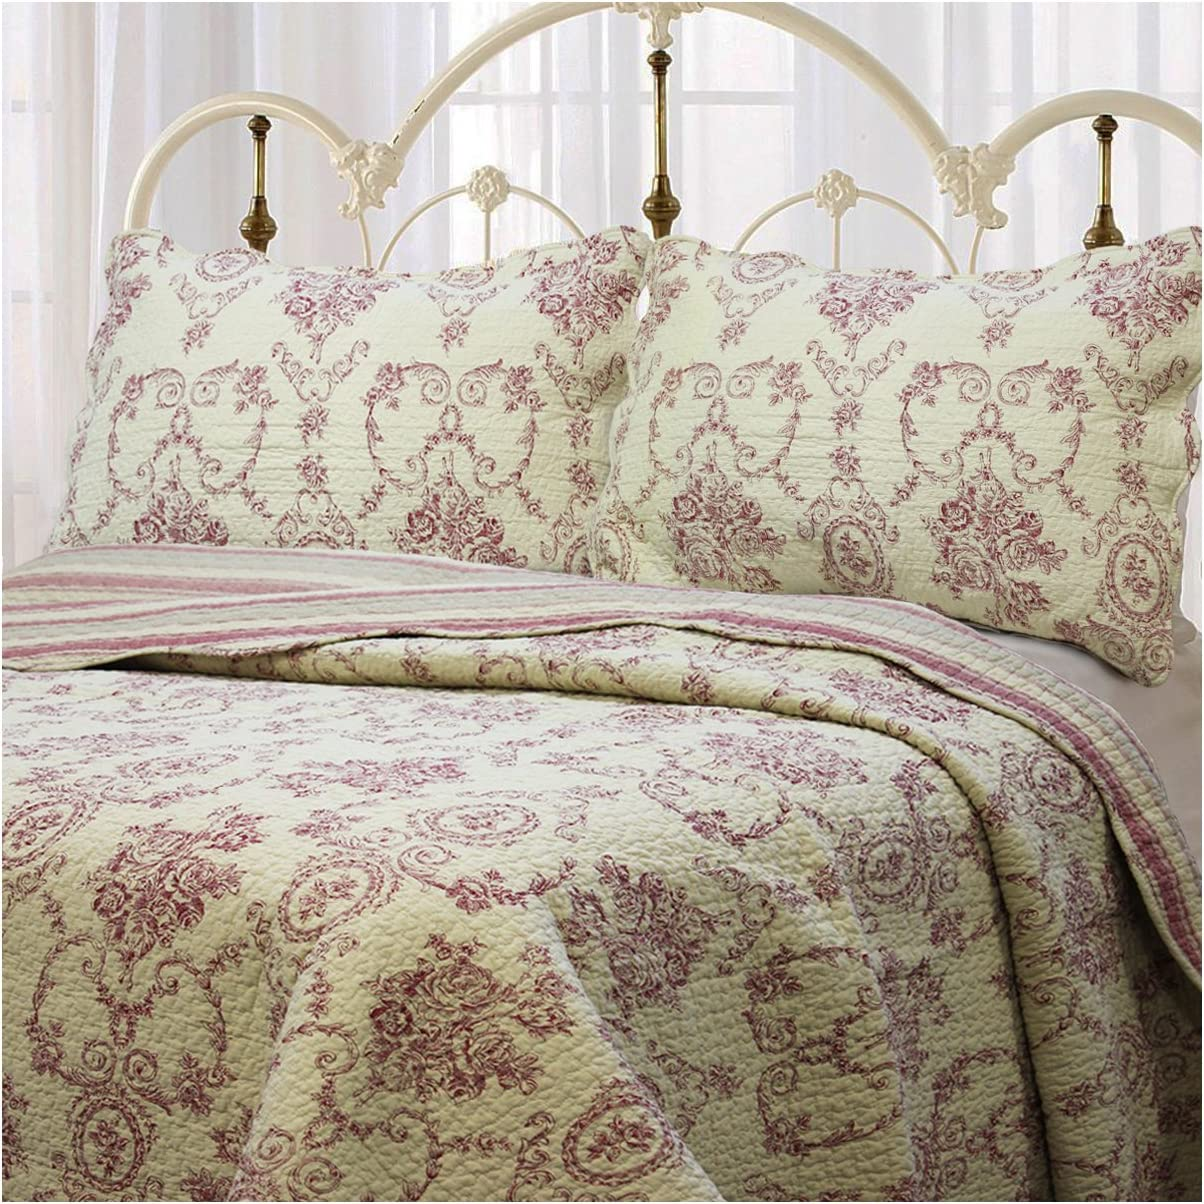 Cozy Max 66% OFF store Line Home Fashions Size Red Medallion French 3 Piece Cotton